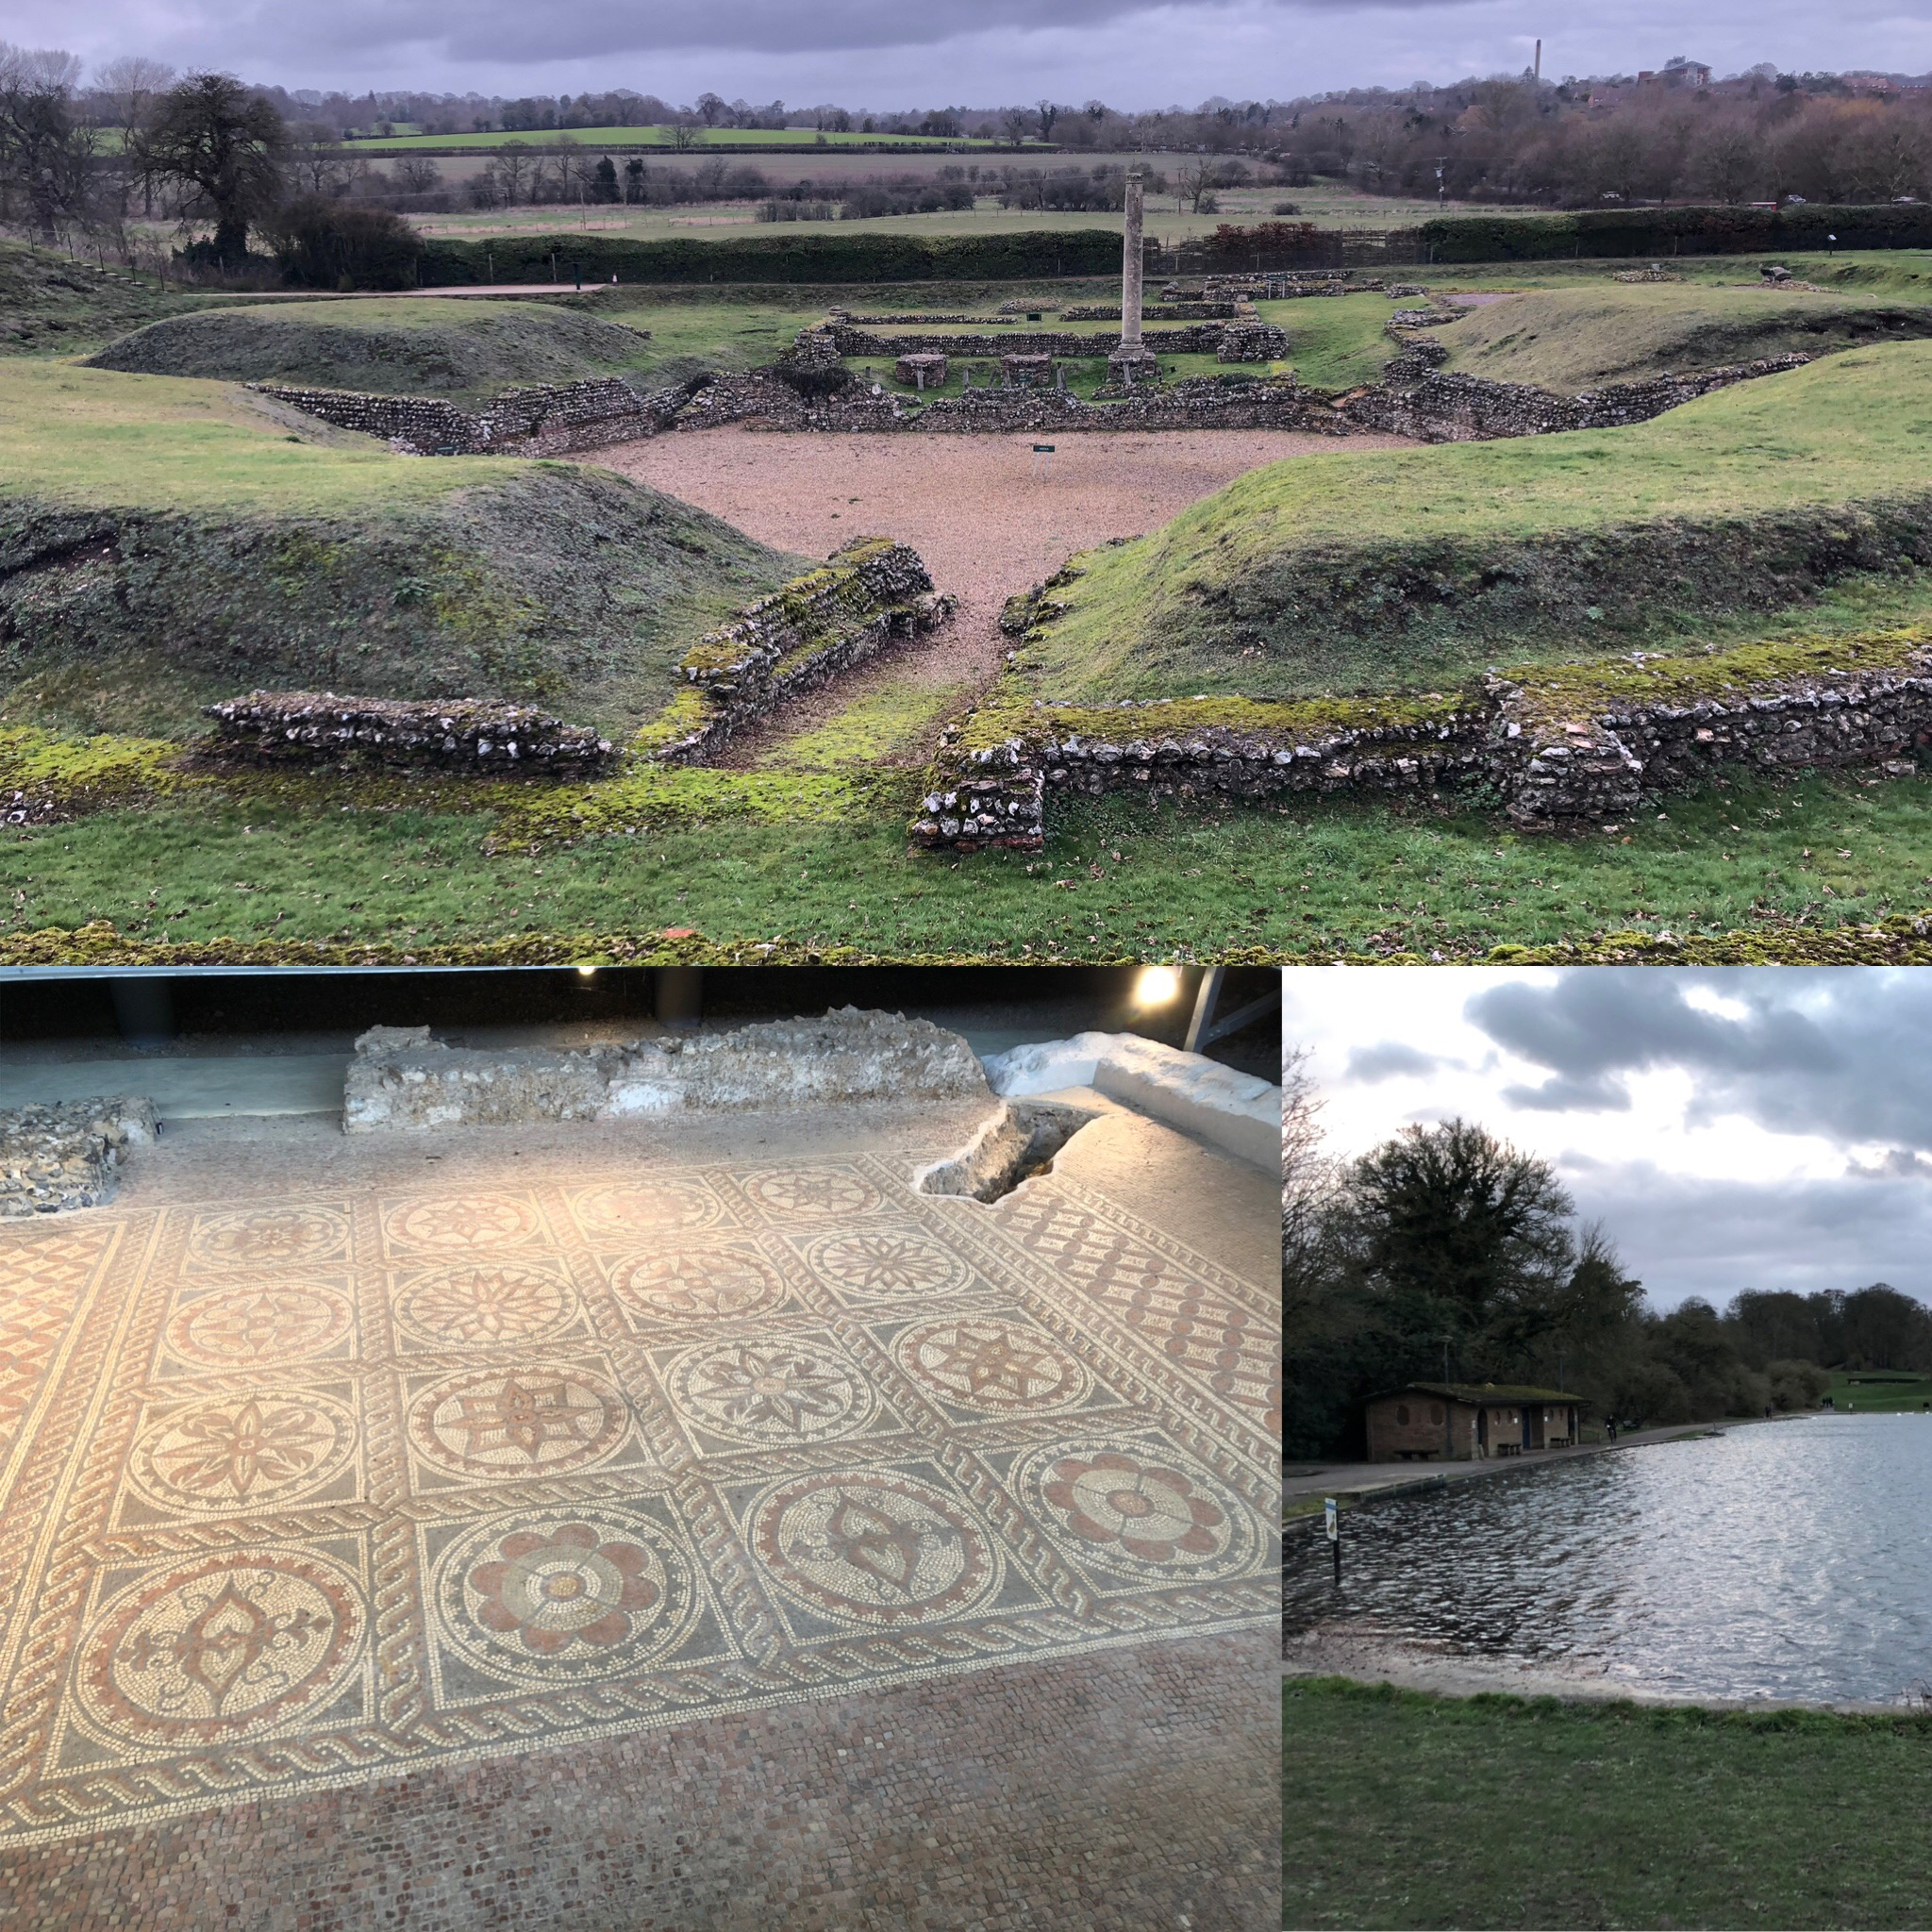 St Albans: Roman Theatre, Roman Mosaic And The Romantic Lake